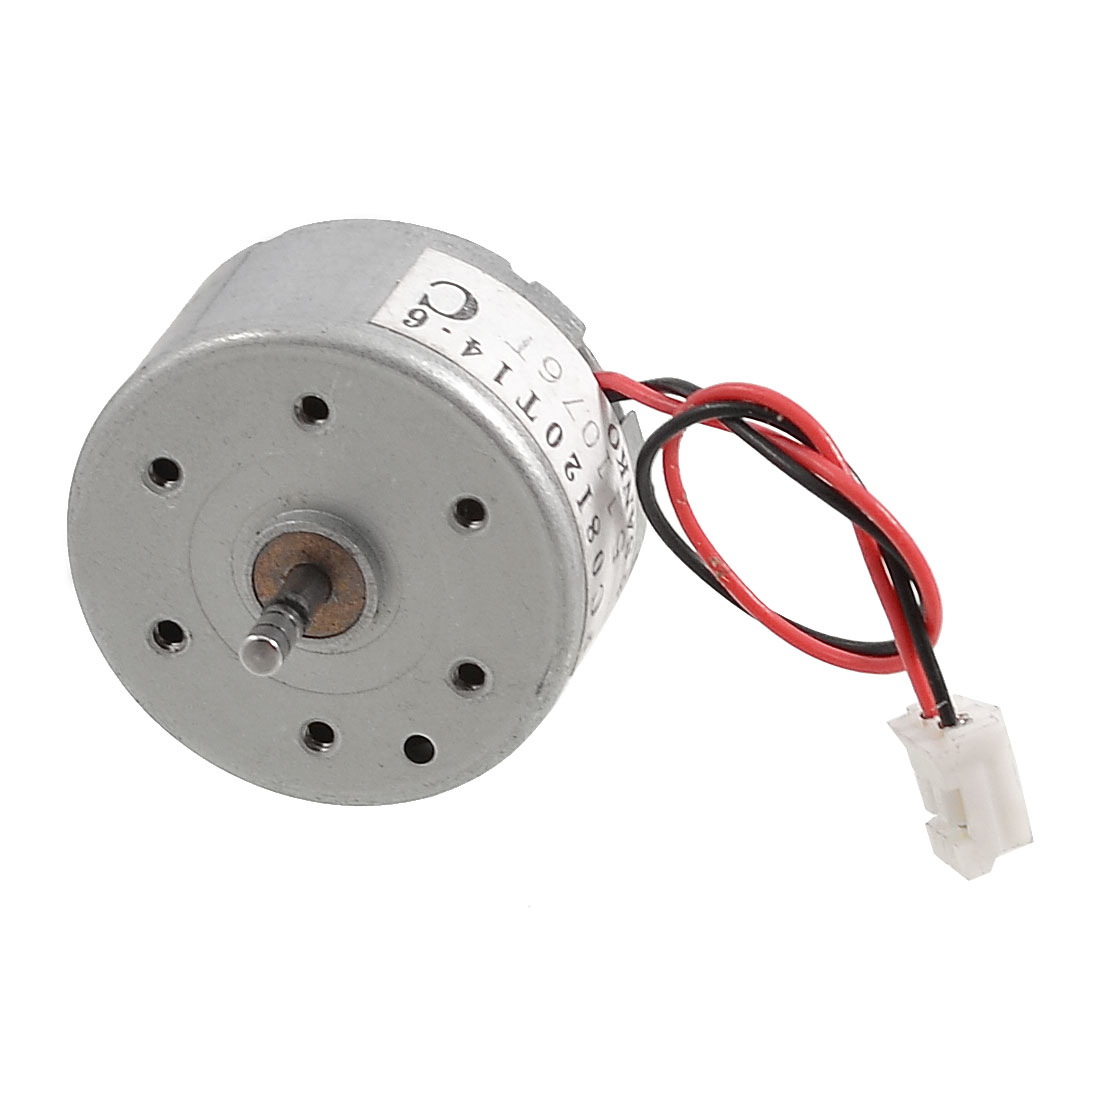 6000RPM Output Speed DC 3V 0.02A Mini Electric Motor